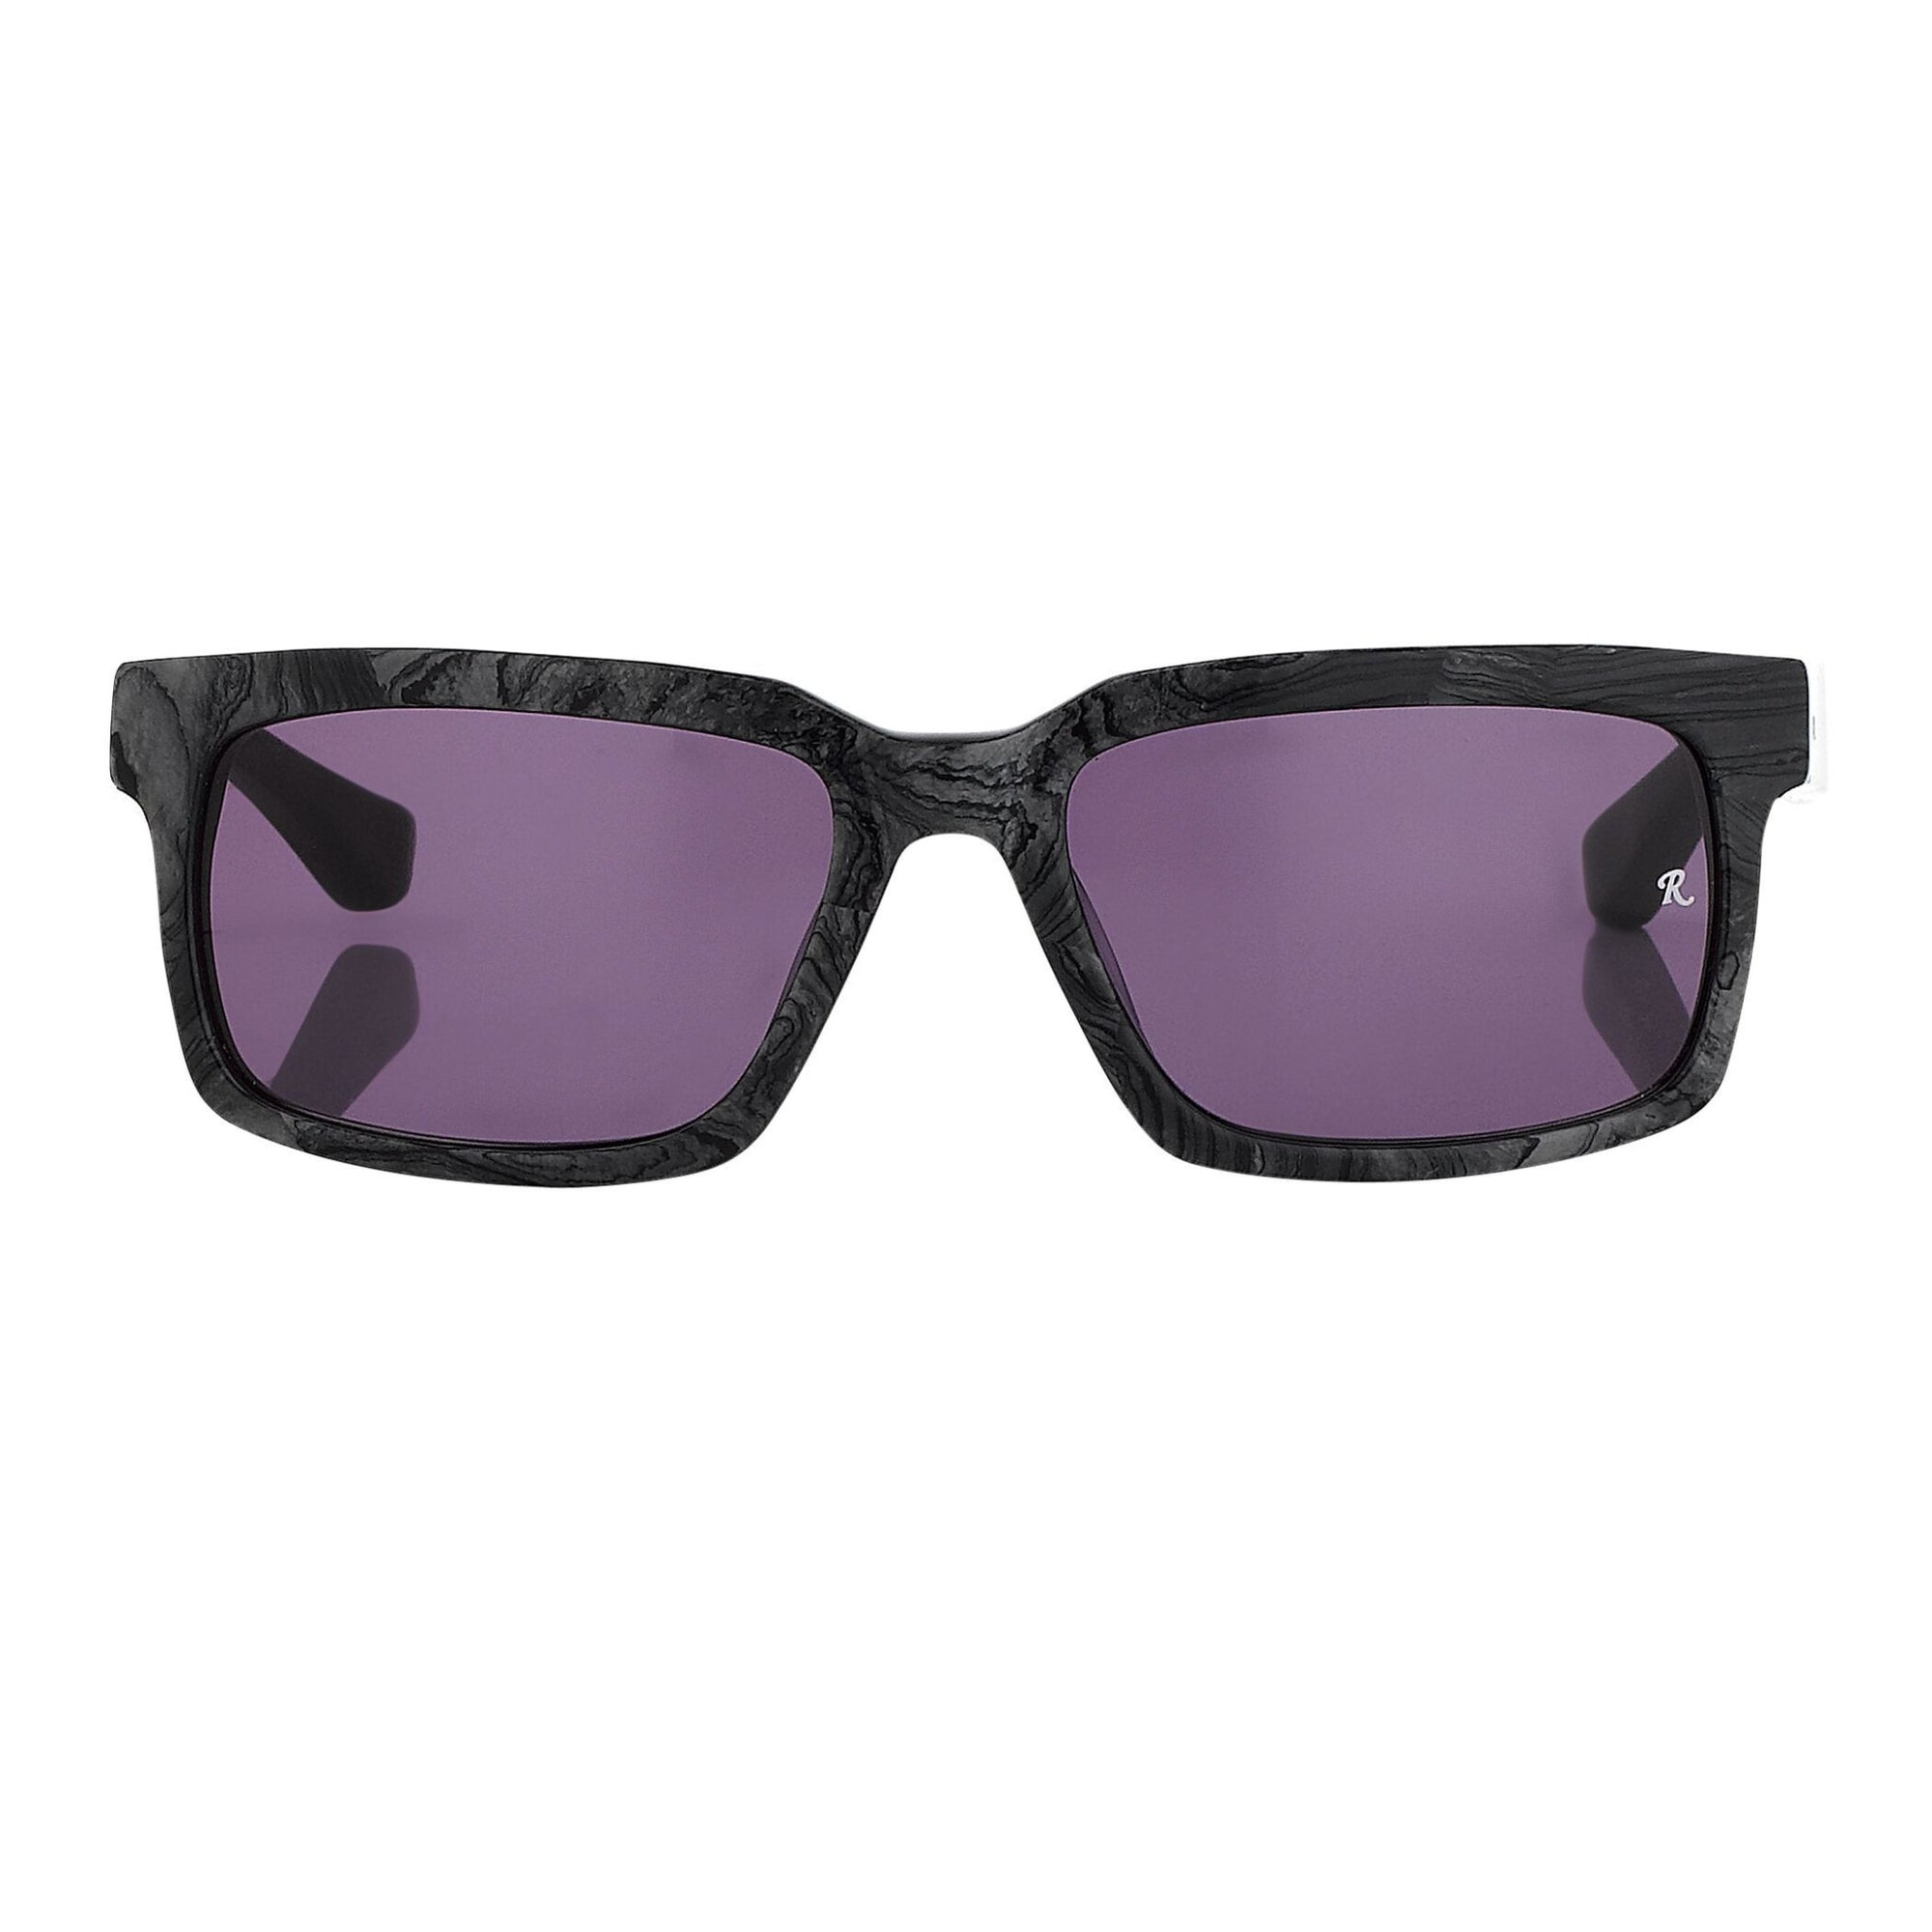 Raf Simons Sunglasses Rectangular Black Texture and Grey Lenses - RAF16C7SUN - Watches & Crystals